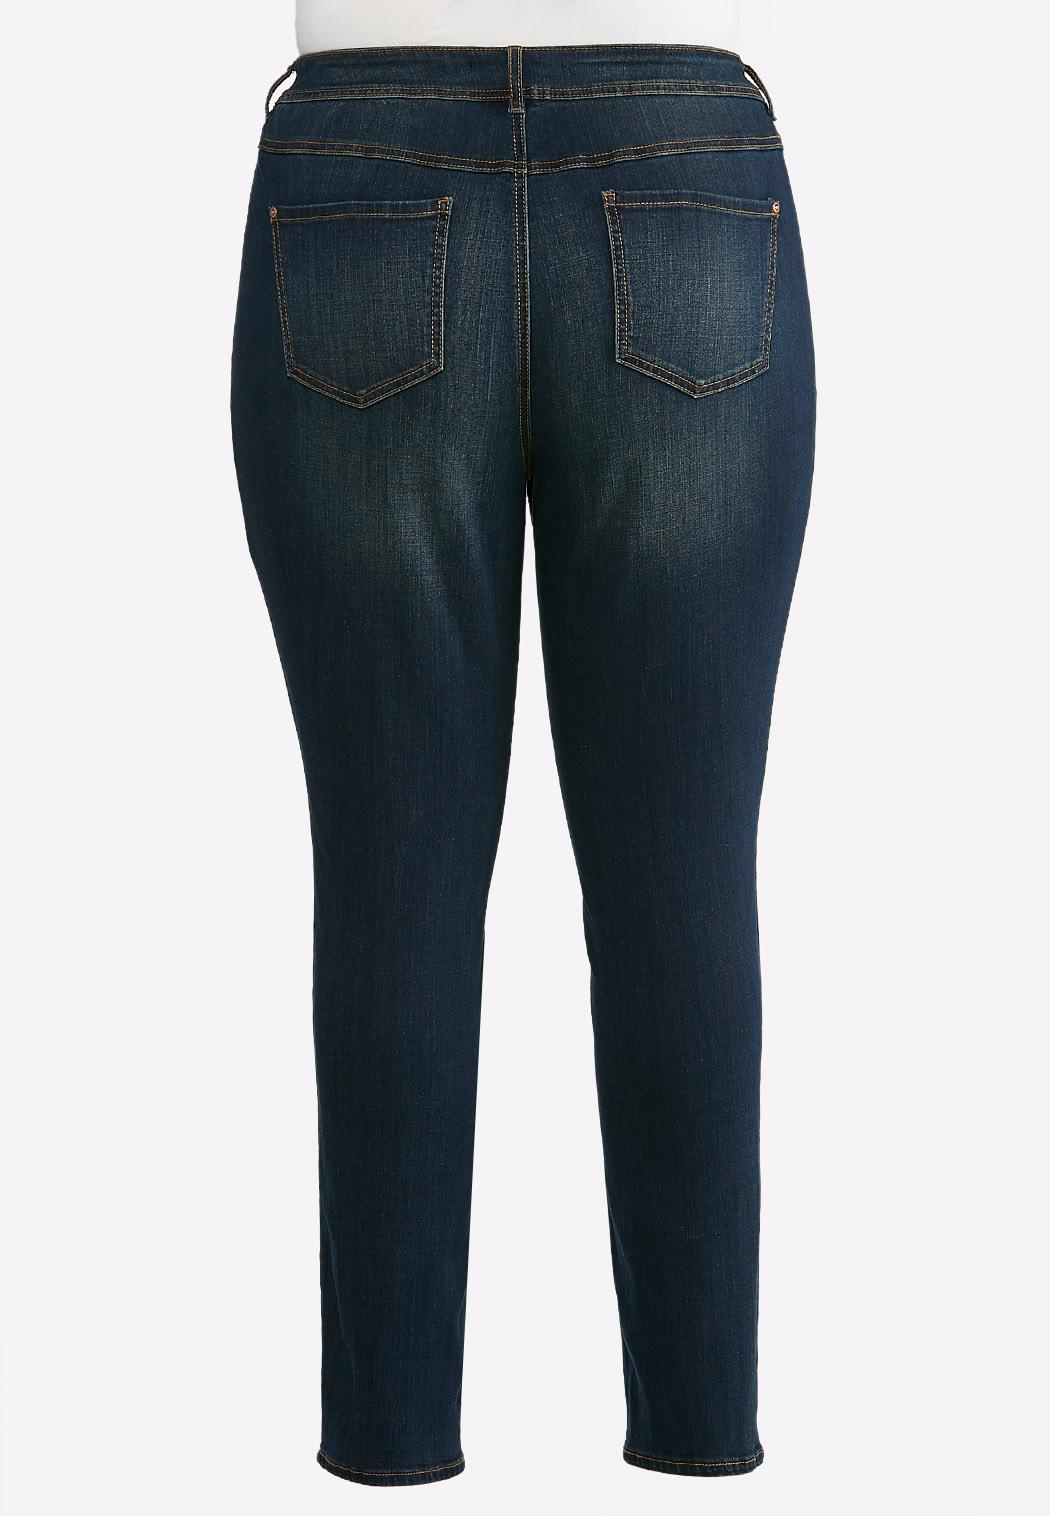 Plus Extended Rinse Wash Skinny Jeans (Item #43547958)